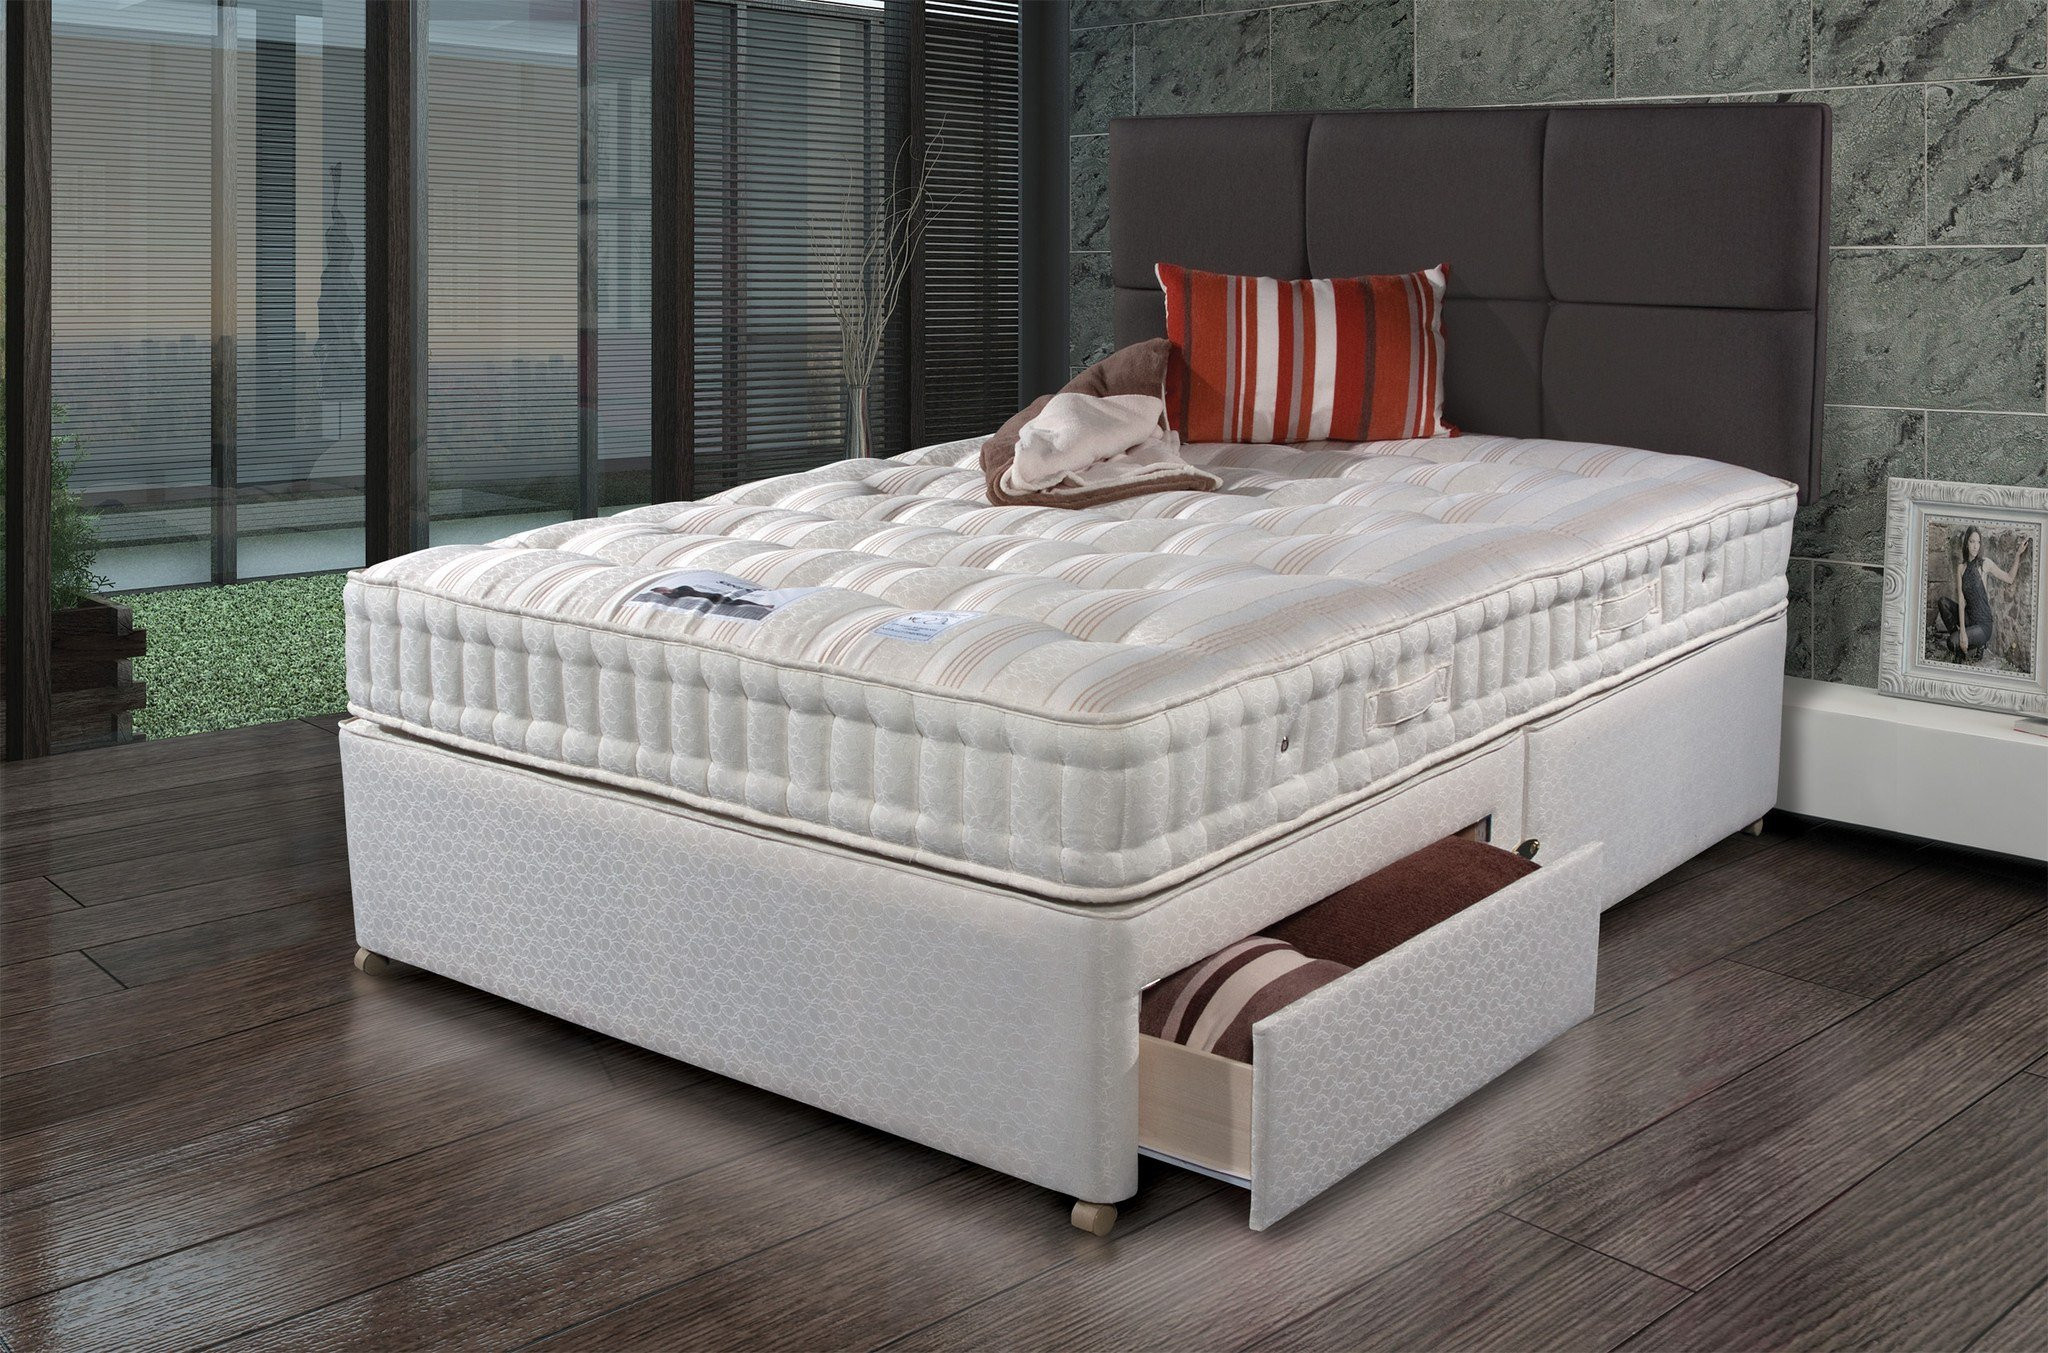 Sleepeezee new backcare extreme 1000 divan set online for New single divan beds